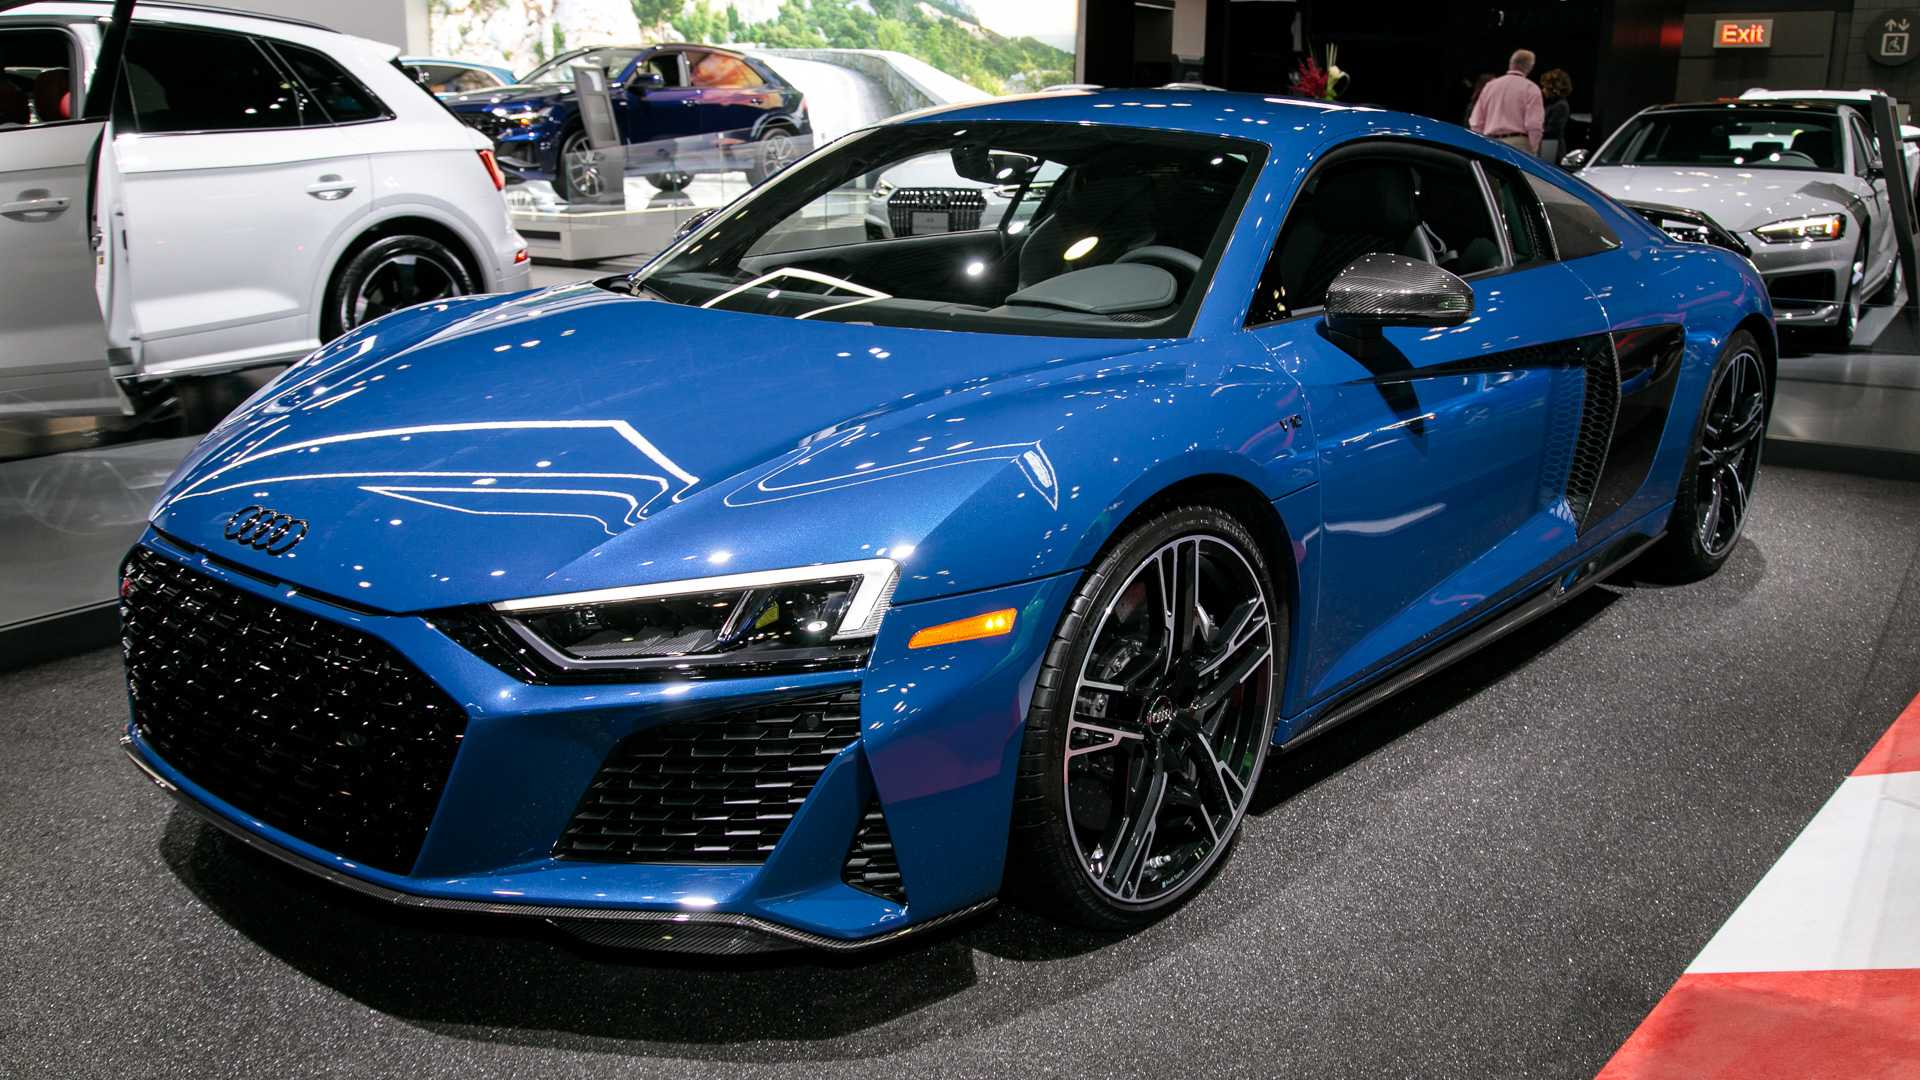 82 Great 2020 Audi R8 For Sale Rumors with 2020 Audi R8 For Sale